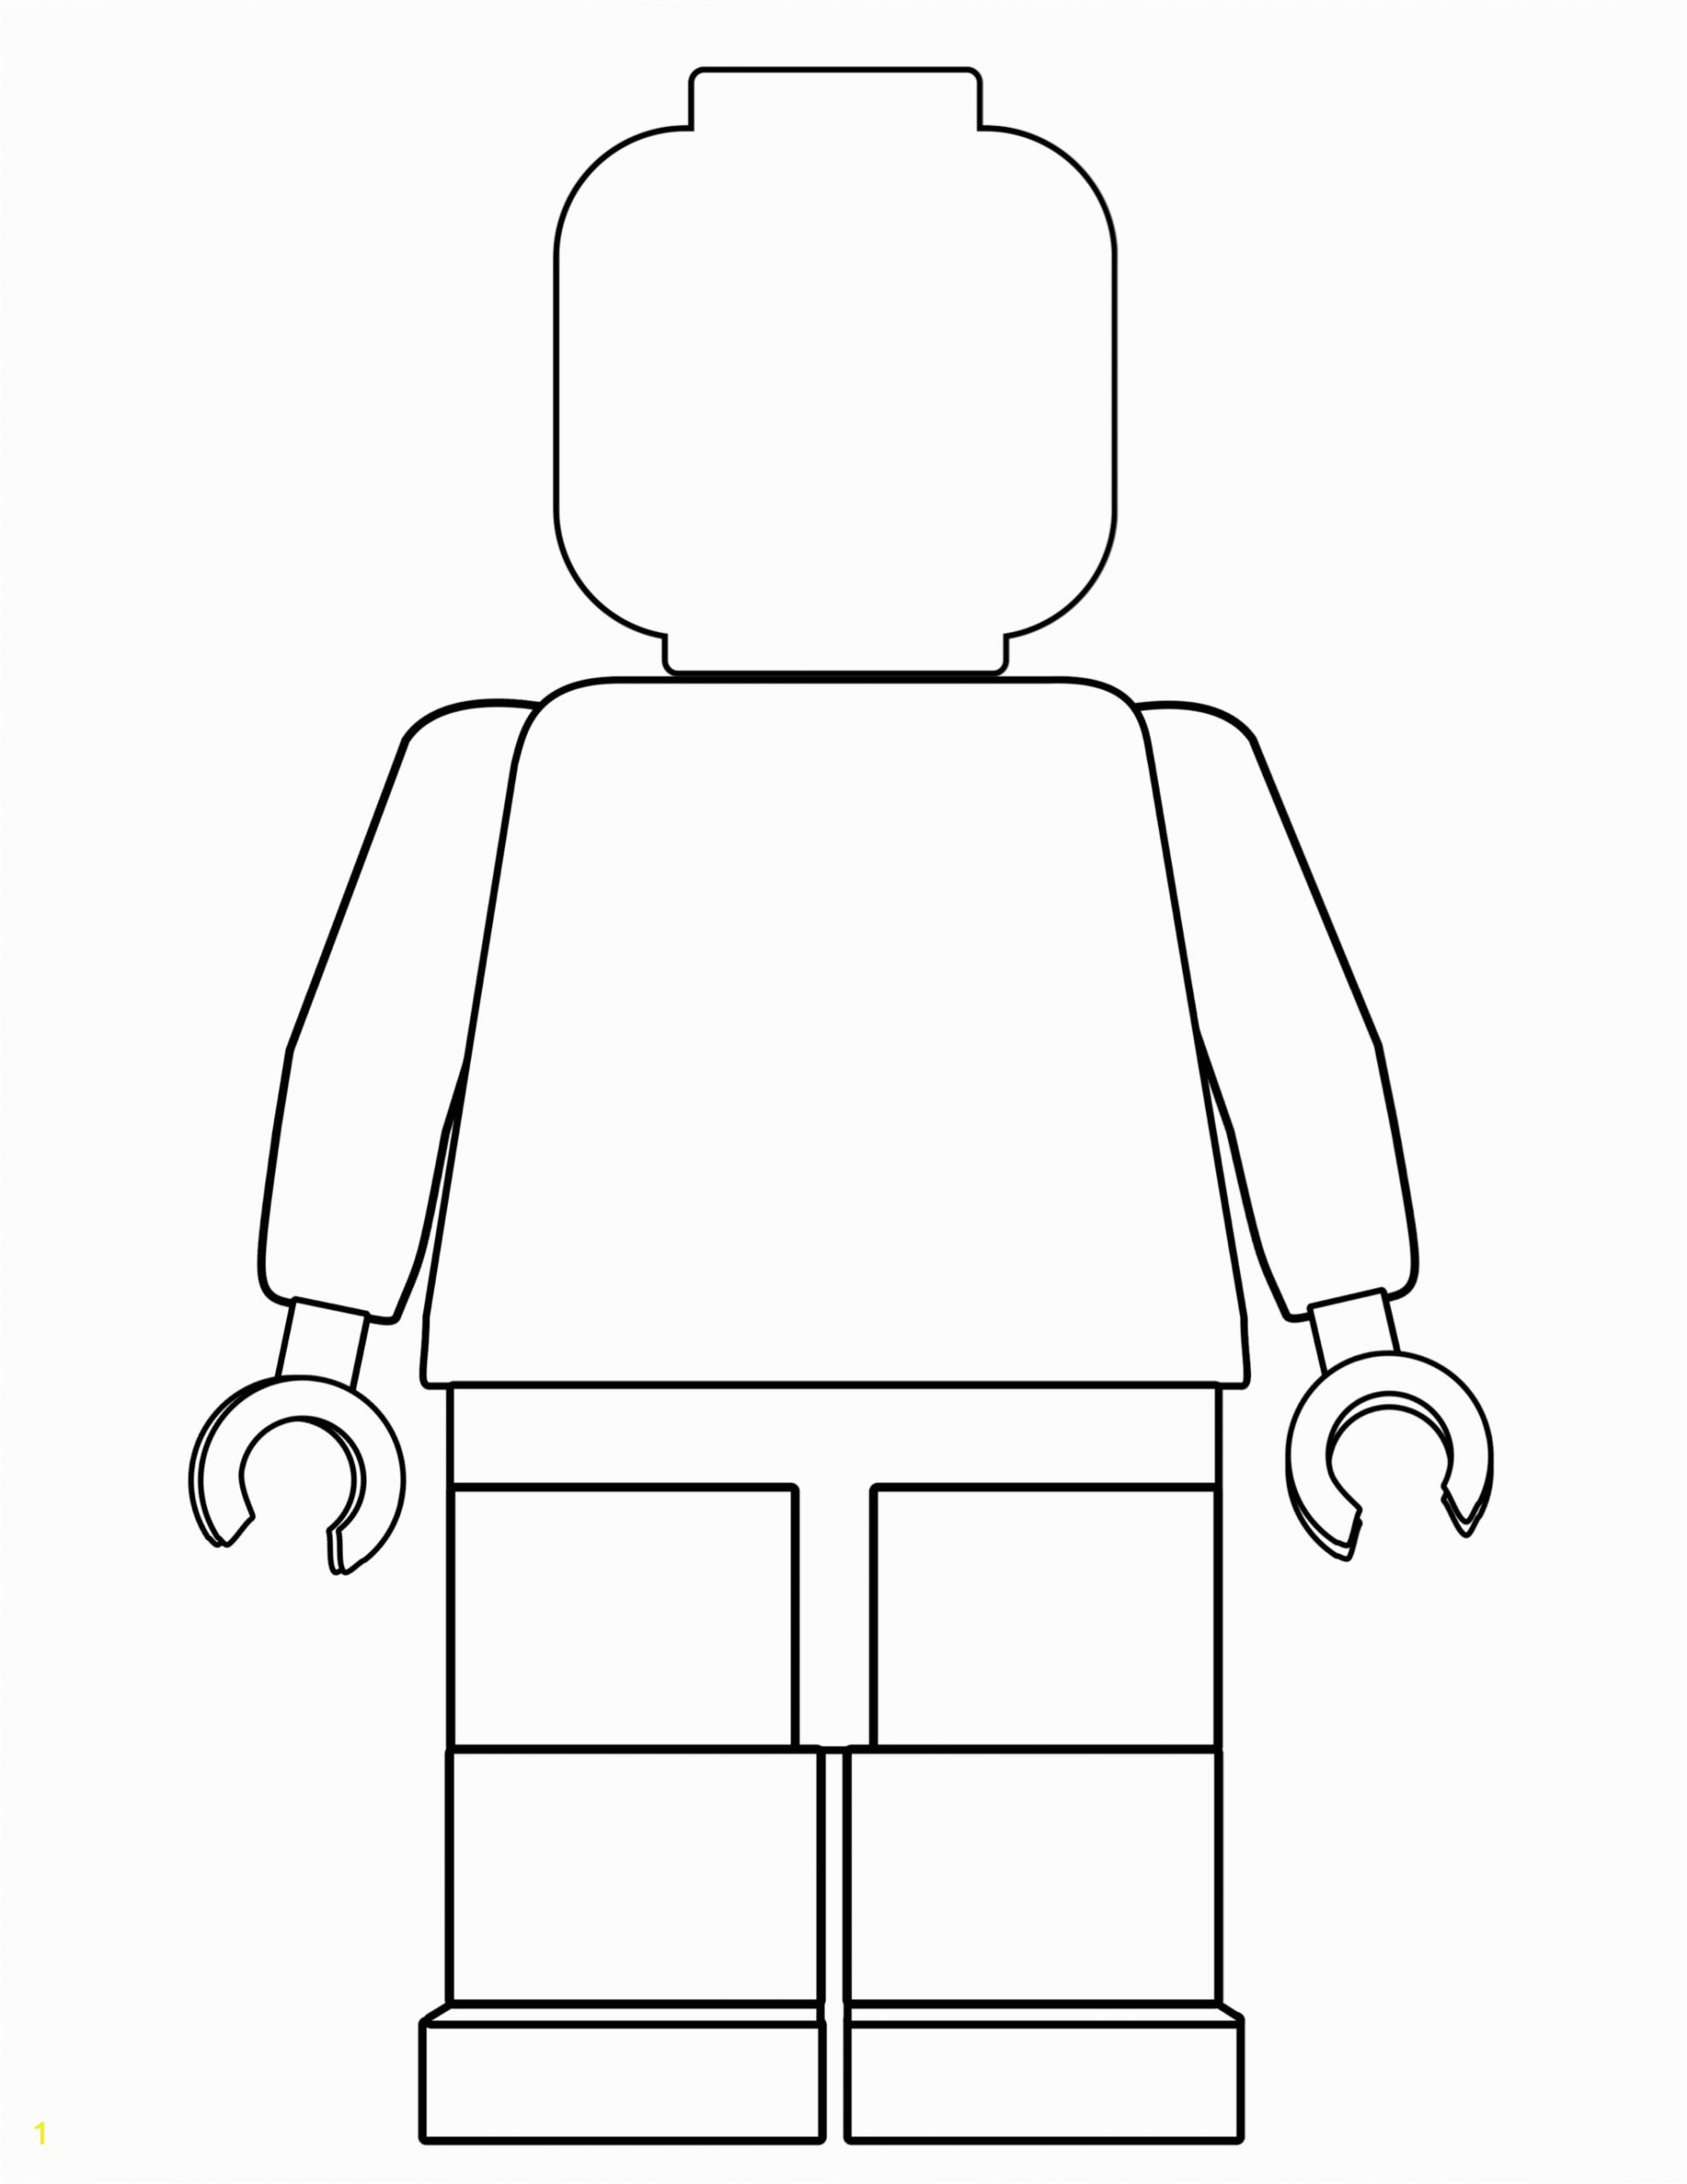 7e77e fee7af4c153c35fb0856 free printable lego coloring pages paper trail design 2125 2750